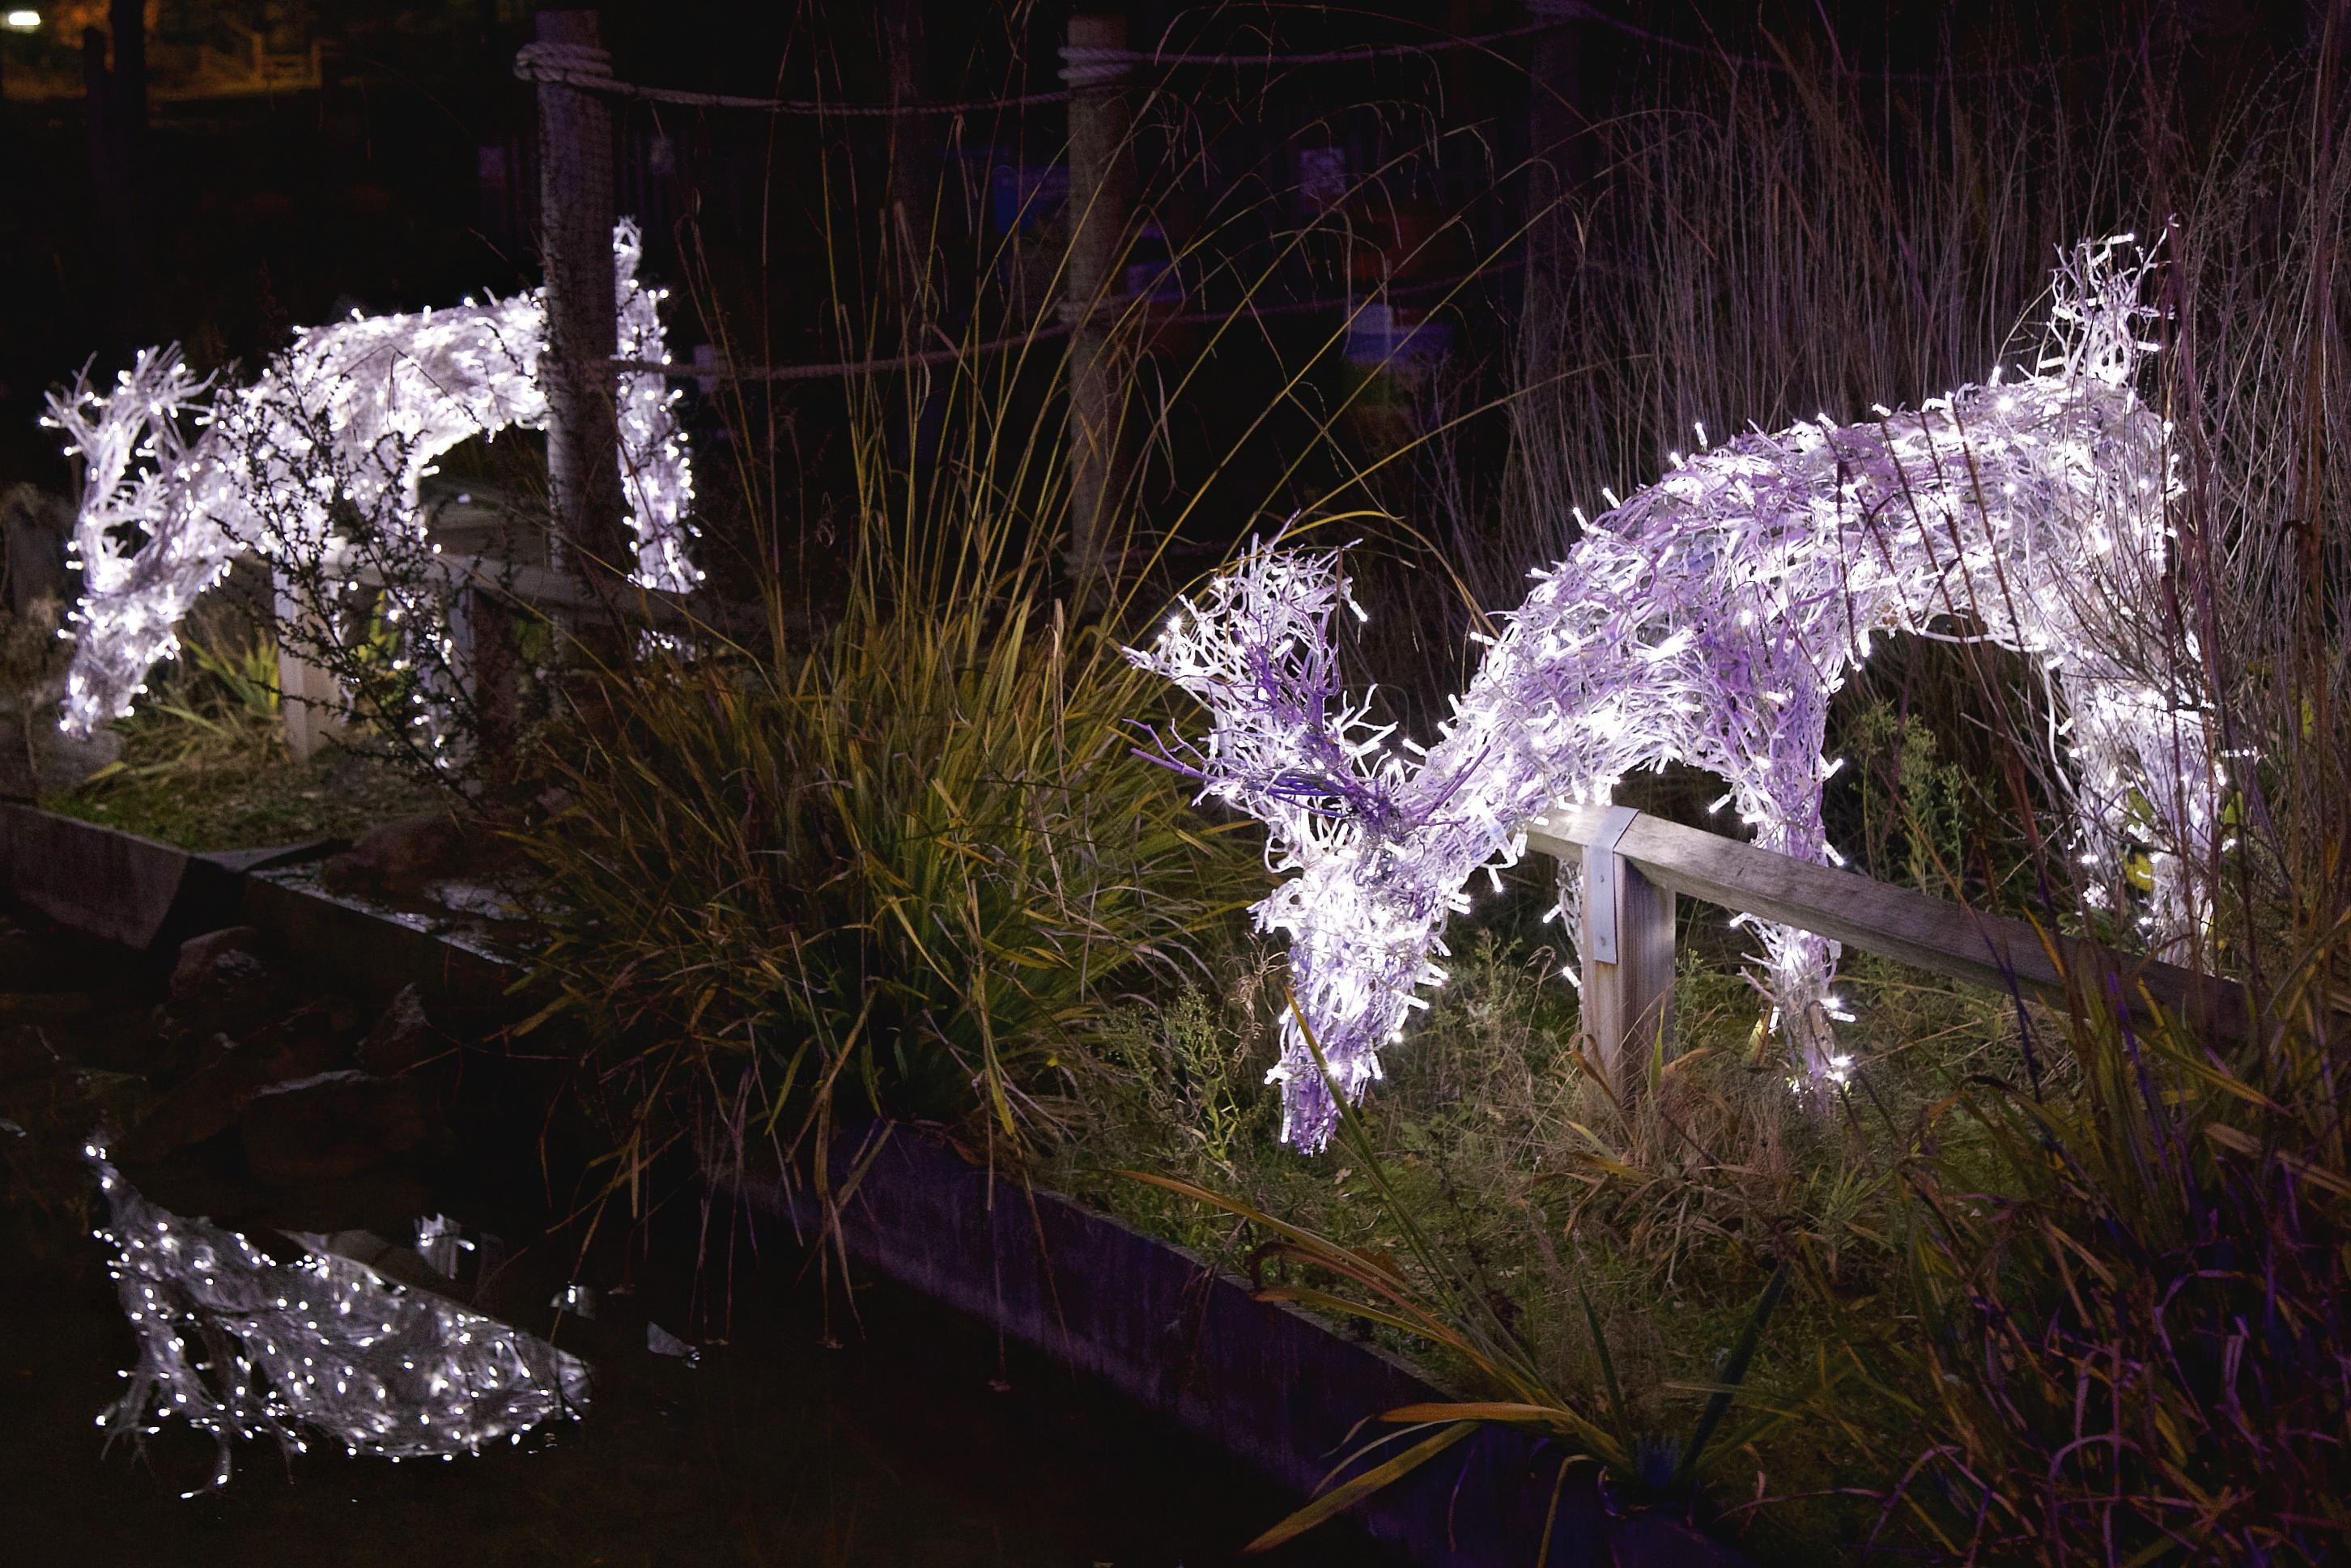 Two Light-Up Reindeers